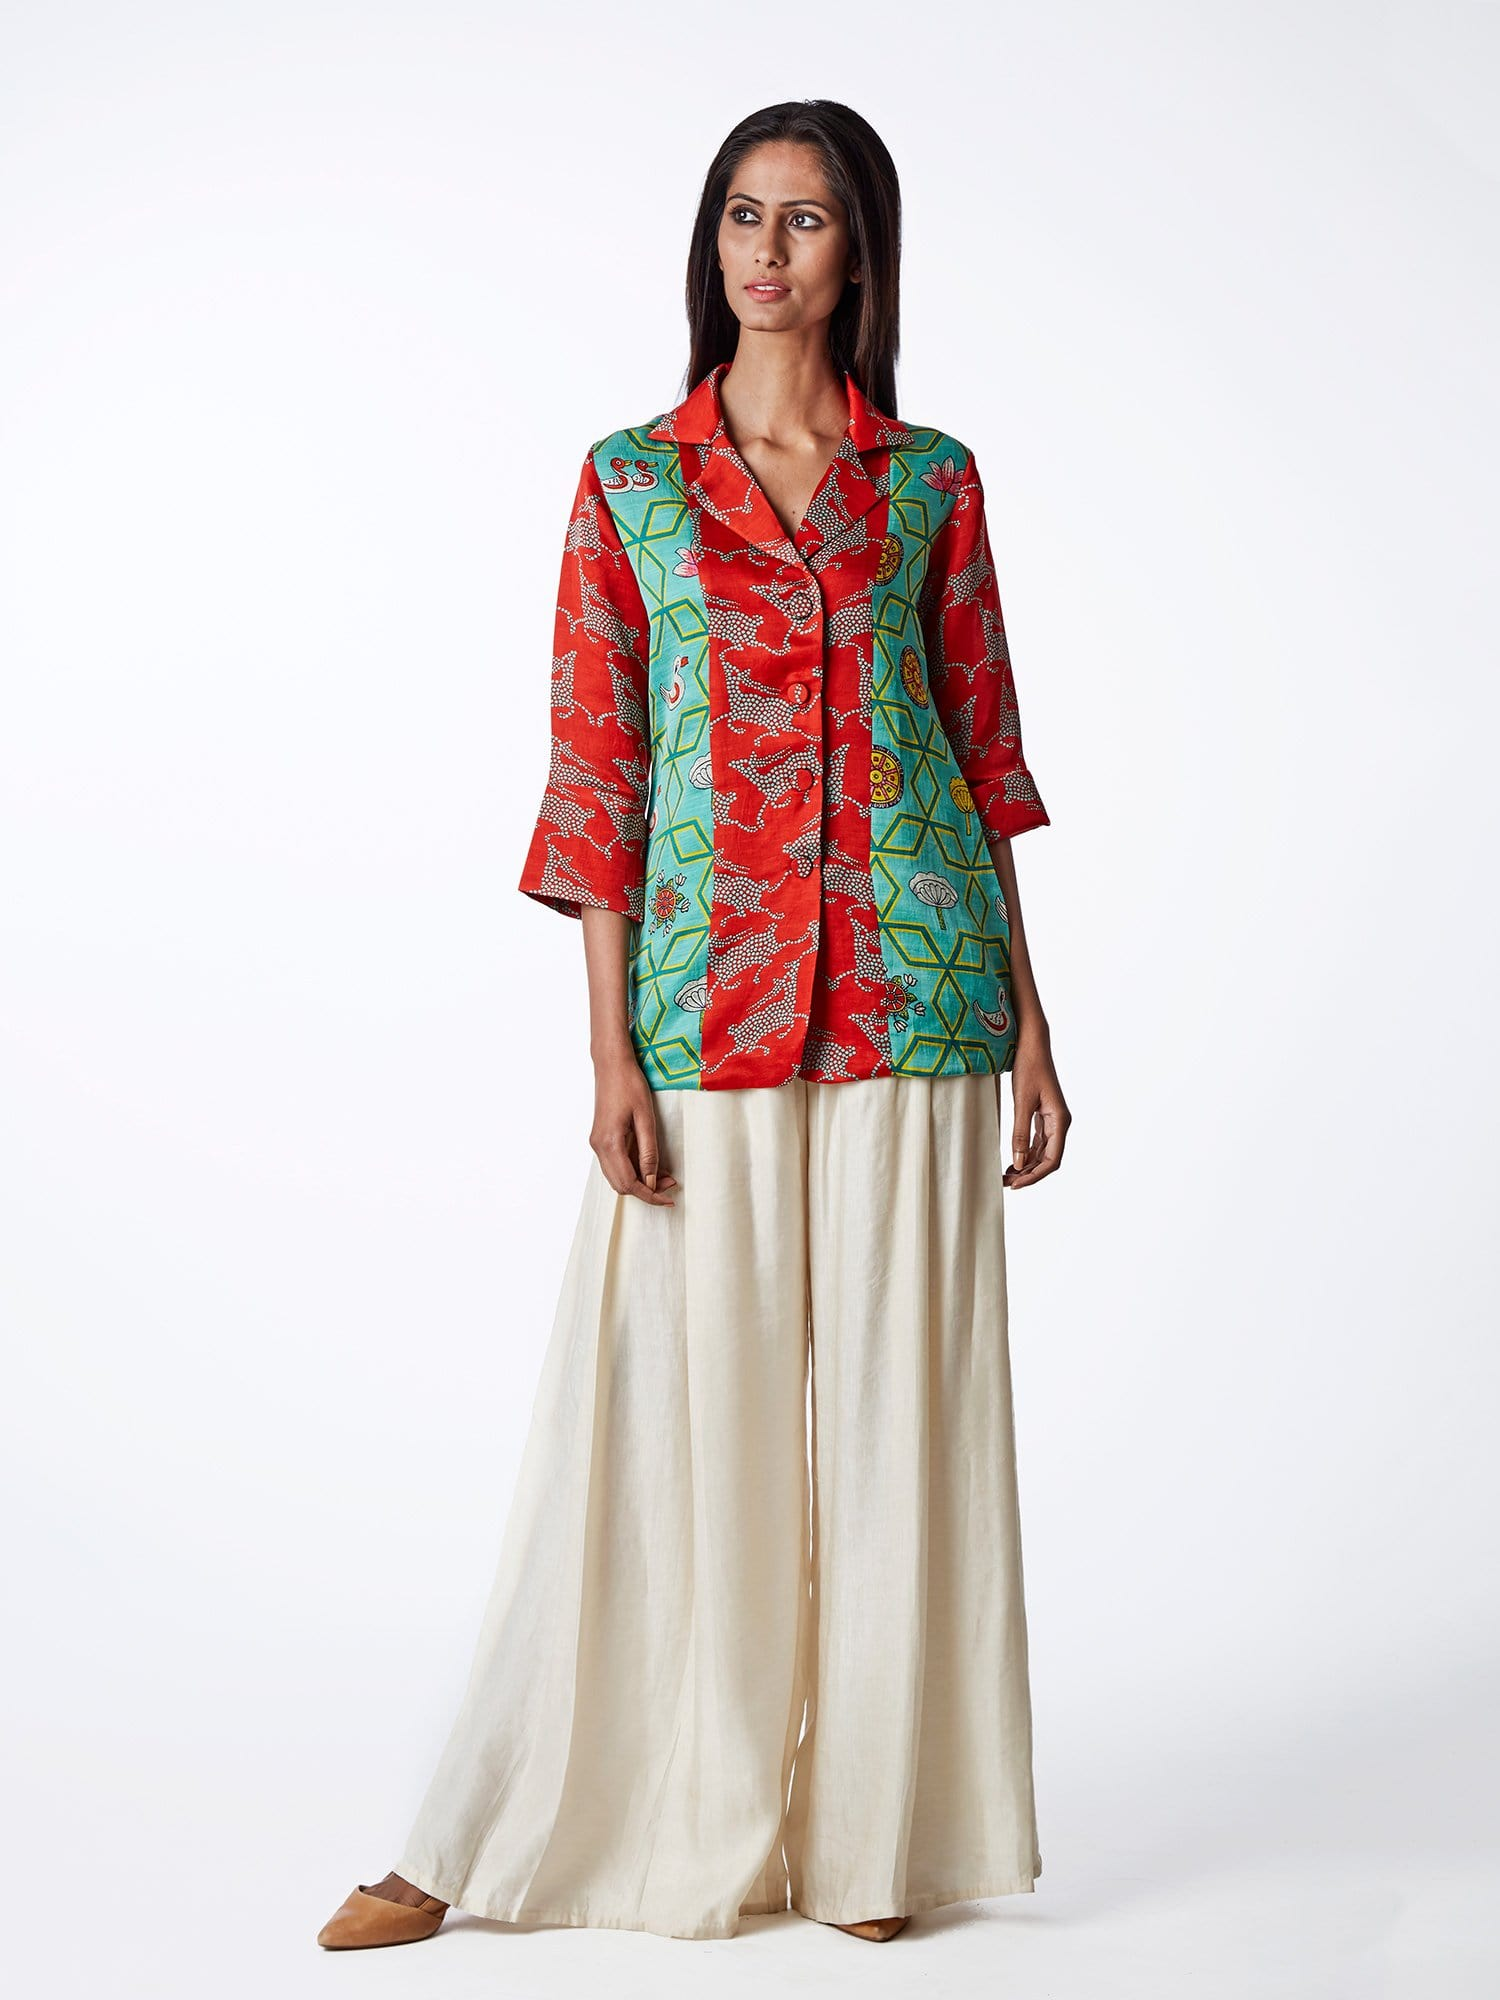 jacket, EMBROIDERED, PRINTS, PRINTED, RED, PRINTED, PALAZZO, SWATI VIJAIVARGIE